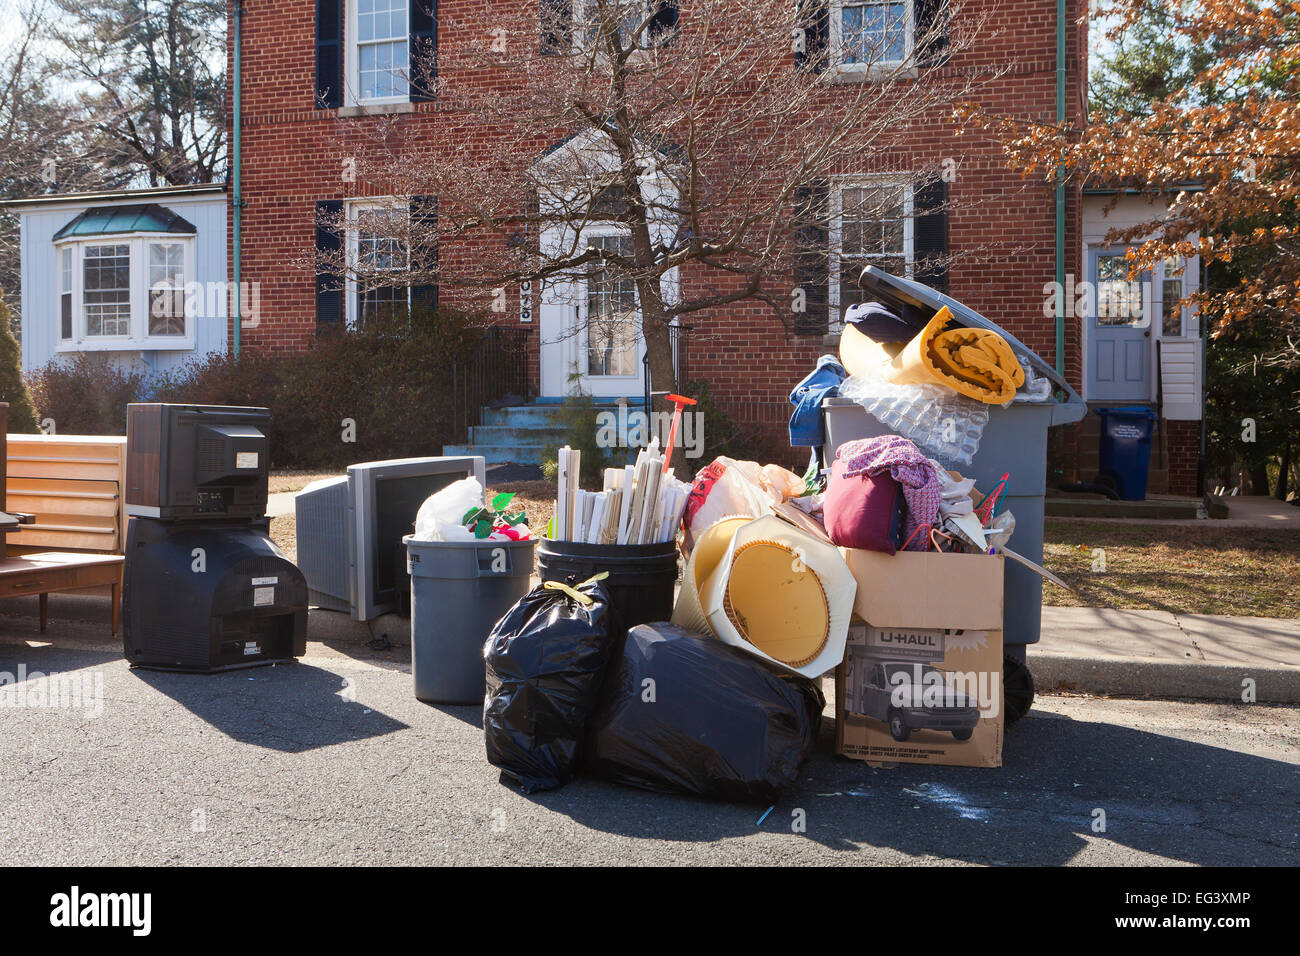 Furniture Piled Outside Of House After Eviction Of Tenant